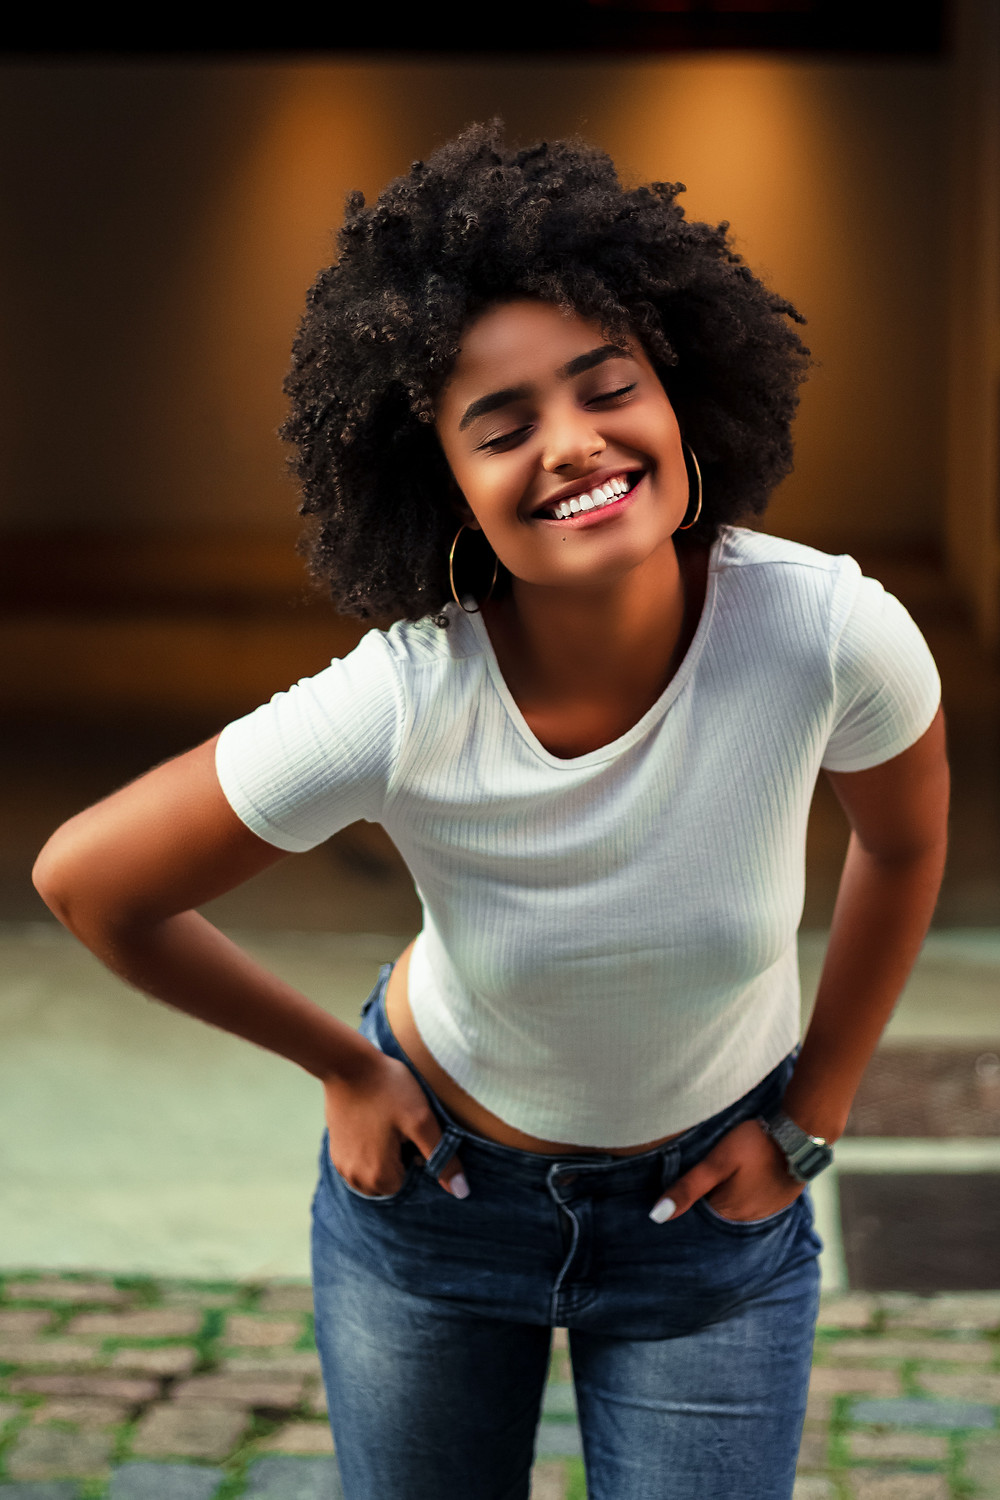 woman in jeans and white shirt leaning forward and smiling